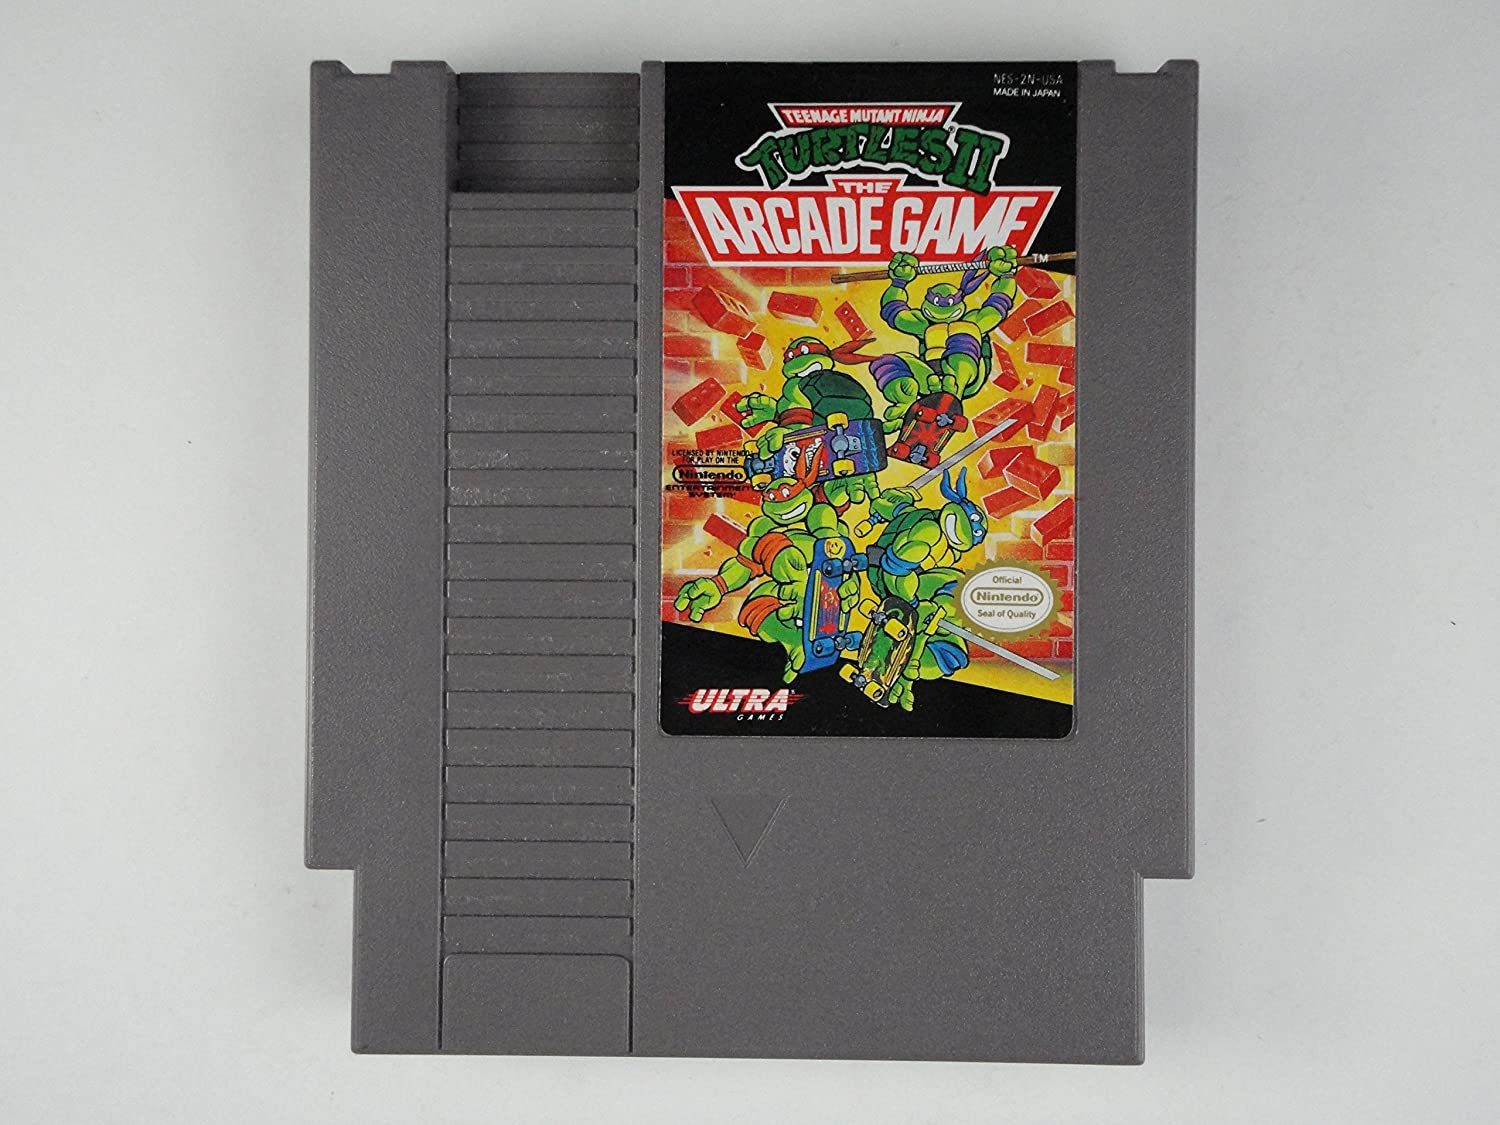 北米版ファミコンTeenage Mutant Ninja Turtles II the Arcade Game B000MFOOLY